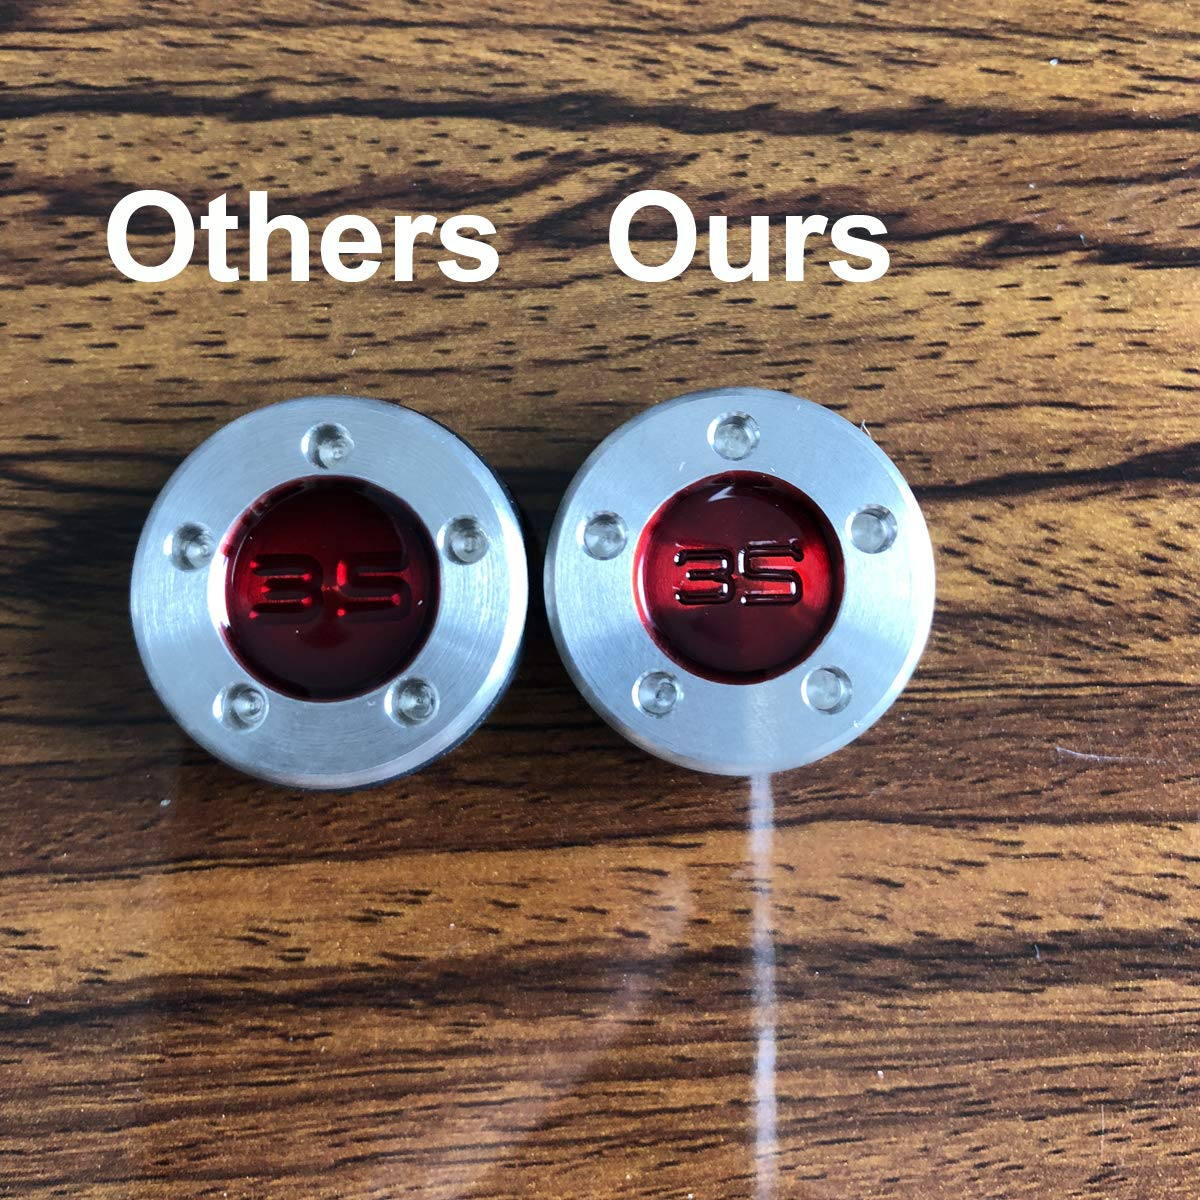 SummerHouse Custom Putter Weights 【 5g, 10g, 15g, 20g, 25g, 30g, 35g, 40g 】 for Scotty Cameron Select Newport Studio Design California GoLo Futura X Series Clubs Head (35) by SummerHouse